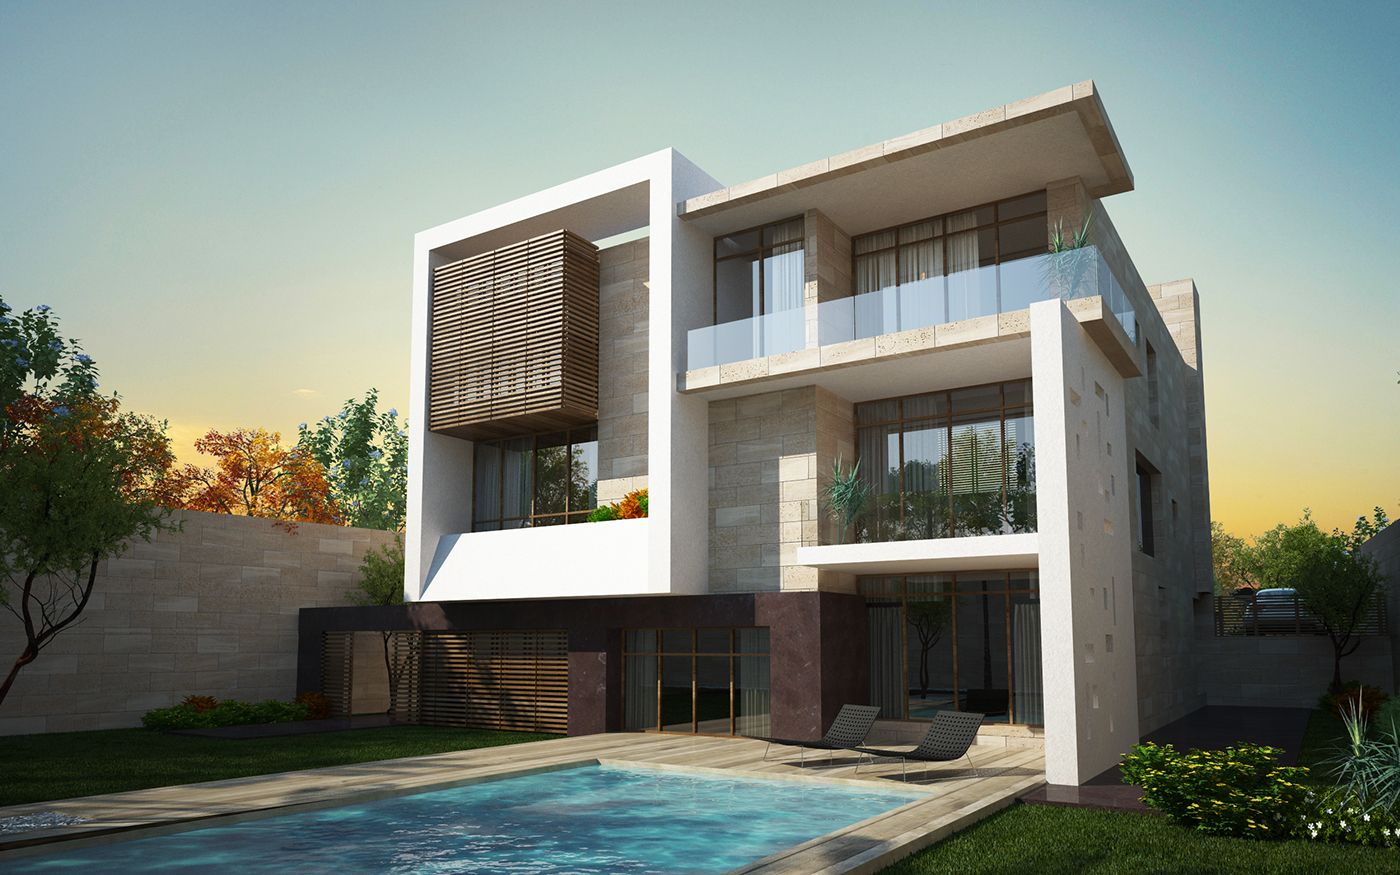 Top 10 houses of this week 27062015 architecture design for Top 10 house design